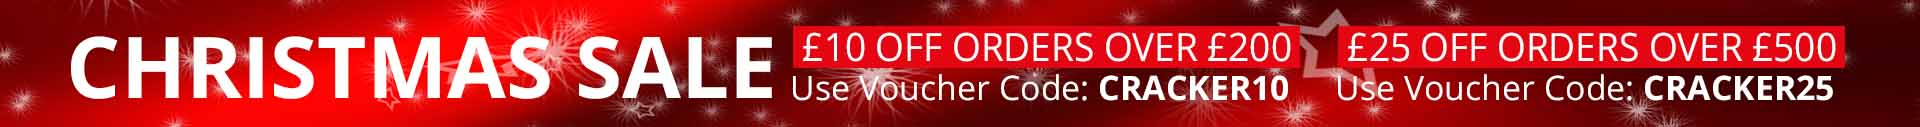 £10 off orders over £200 and £25 off orders over £500.